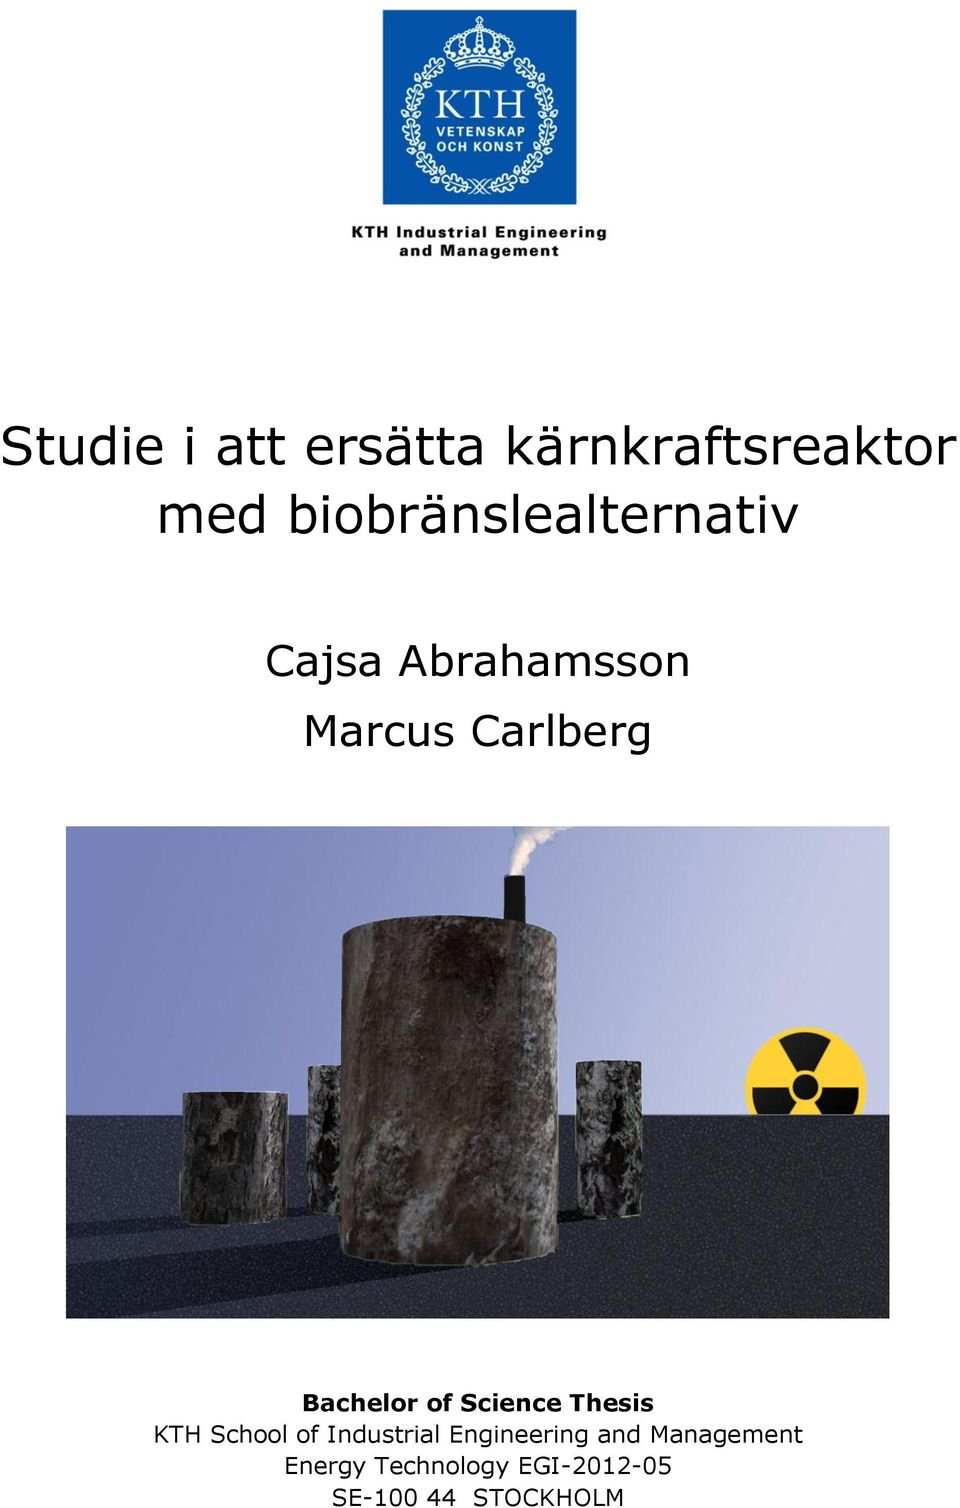 Bachelor of Science Thesis KTH School of Industrial